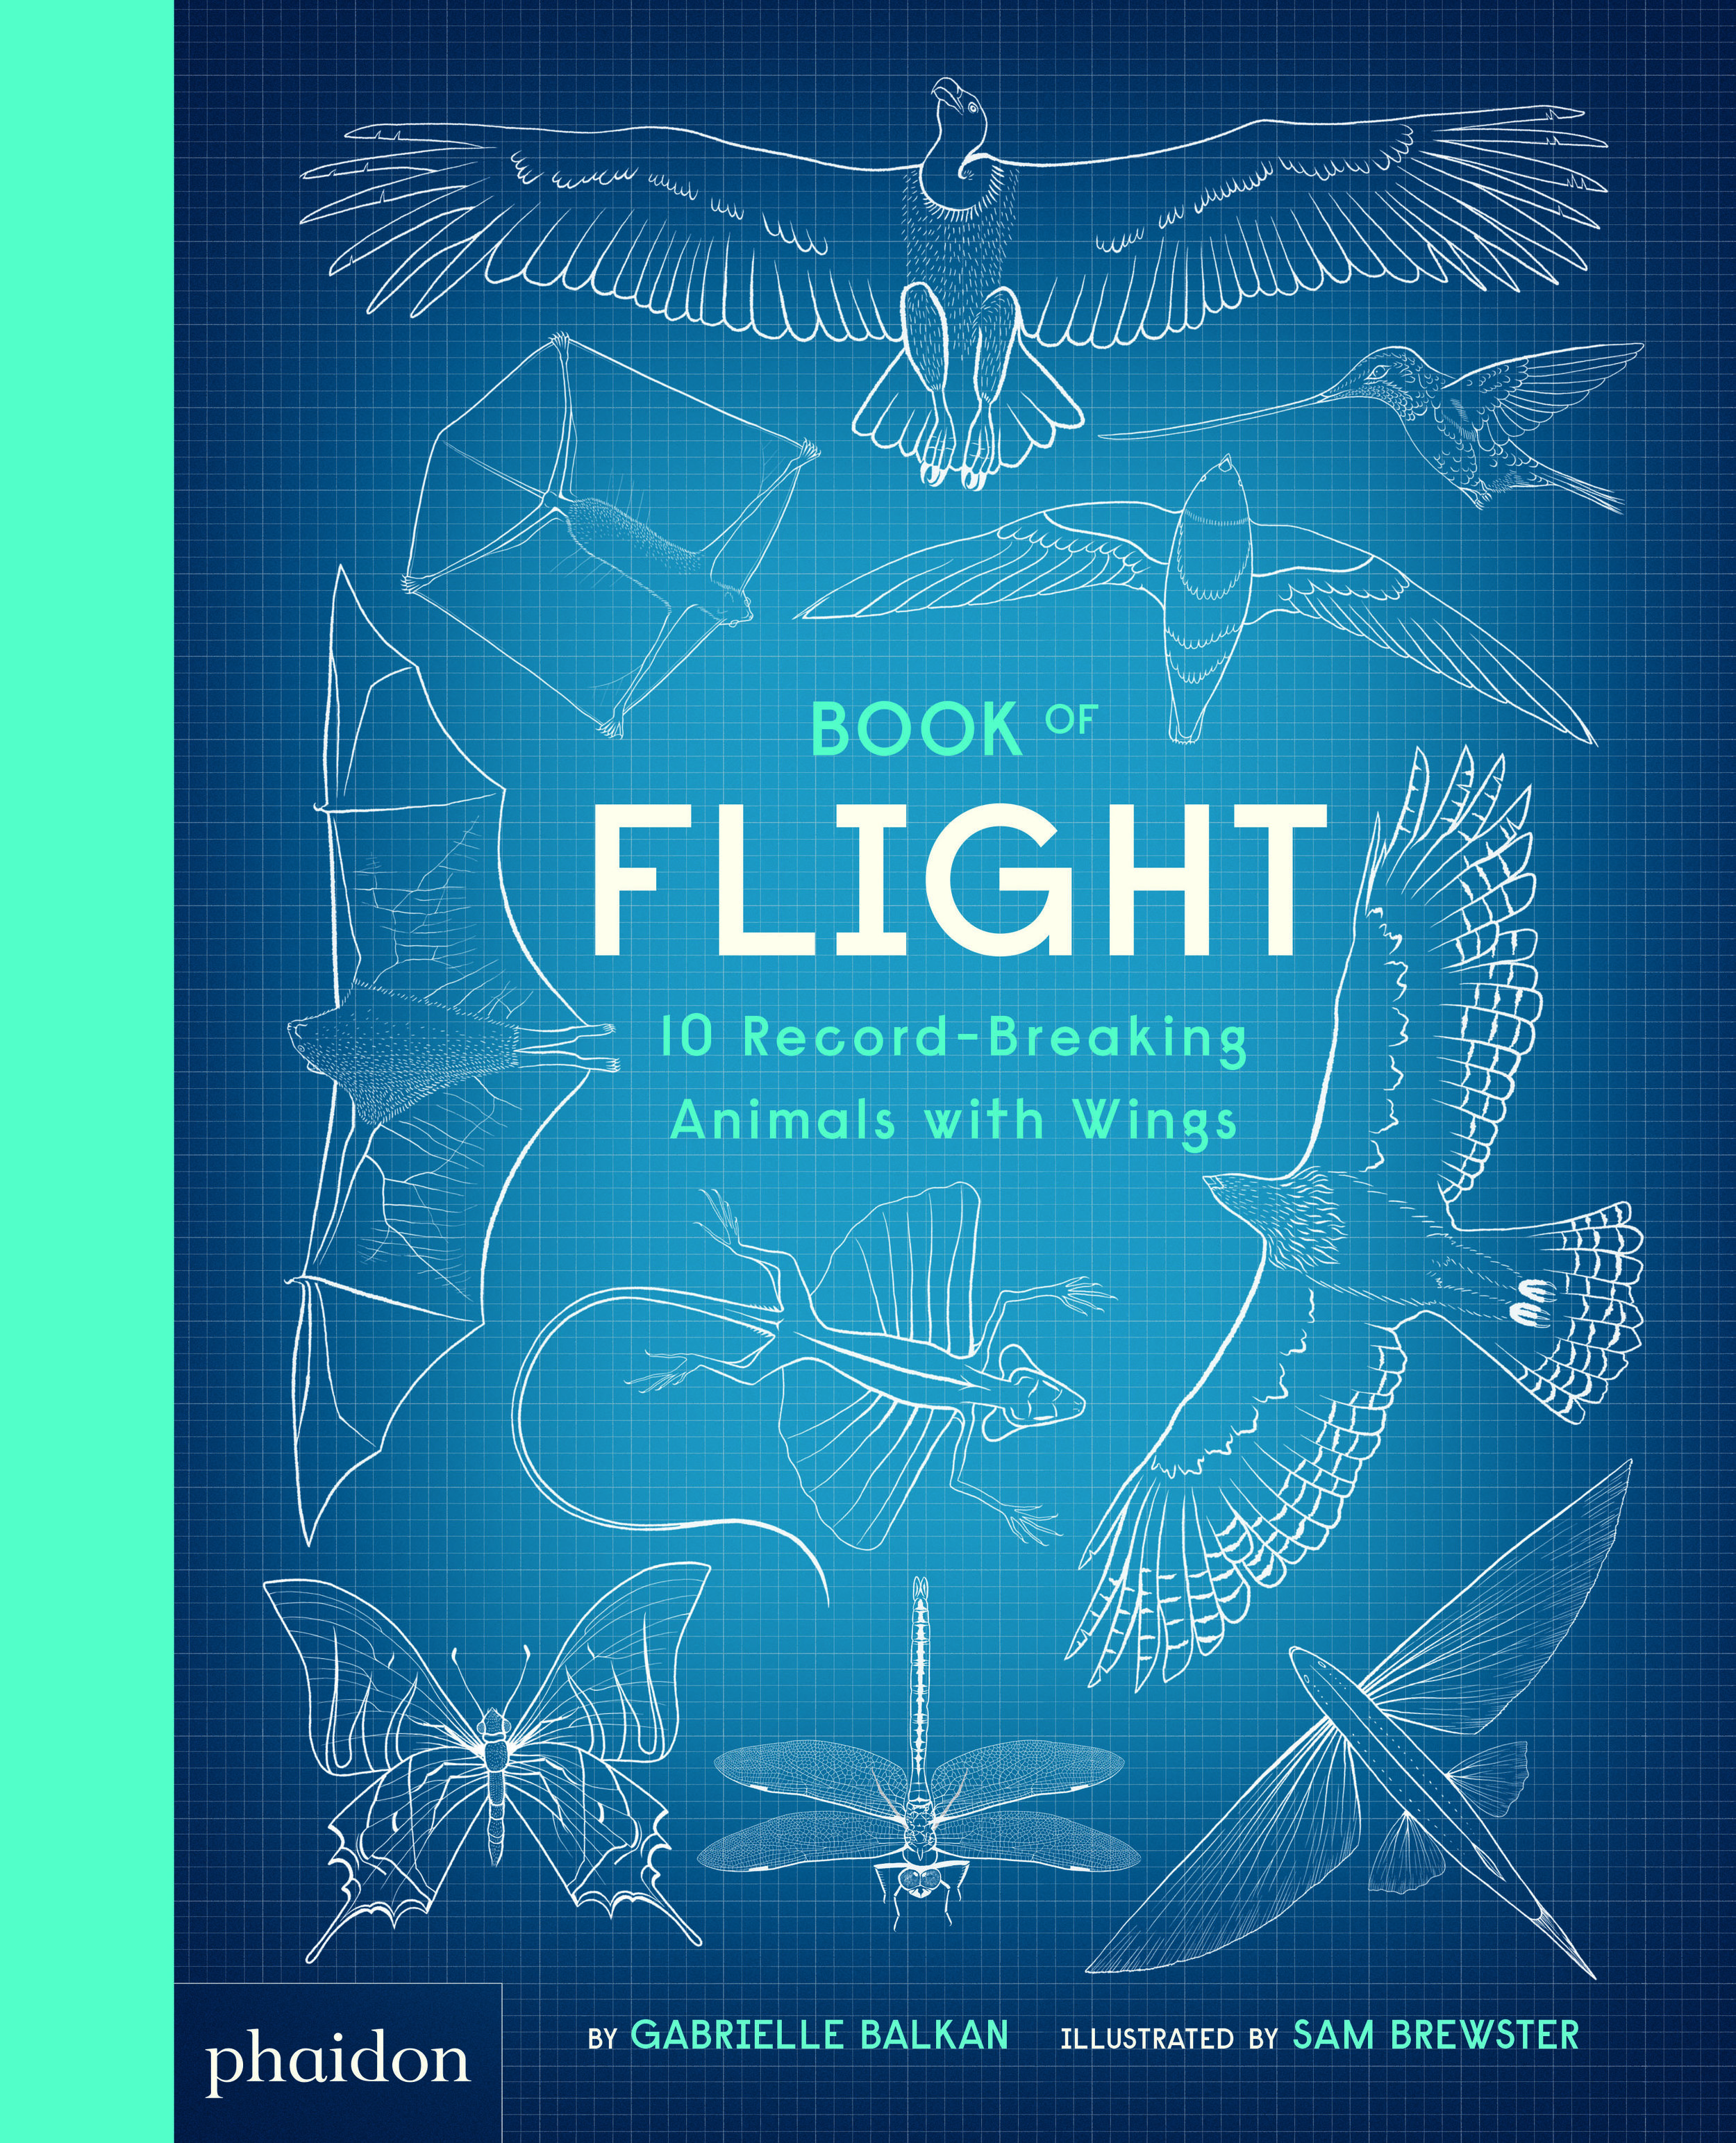 Gabrielle Balkan _Book of Flight_Cover.jpg